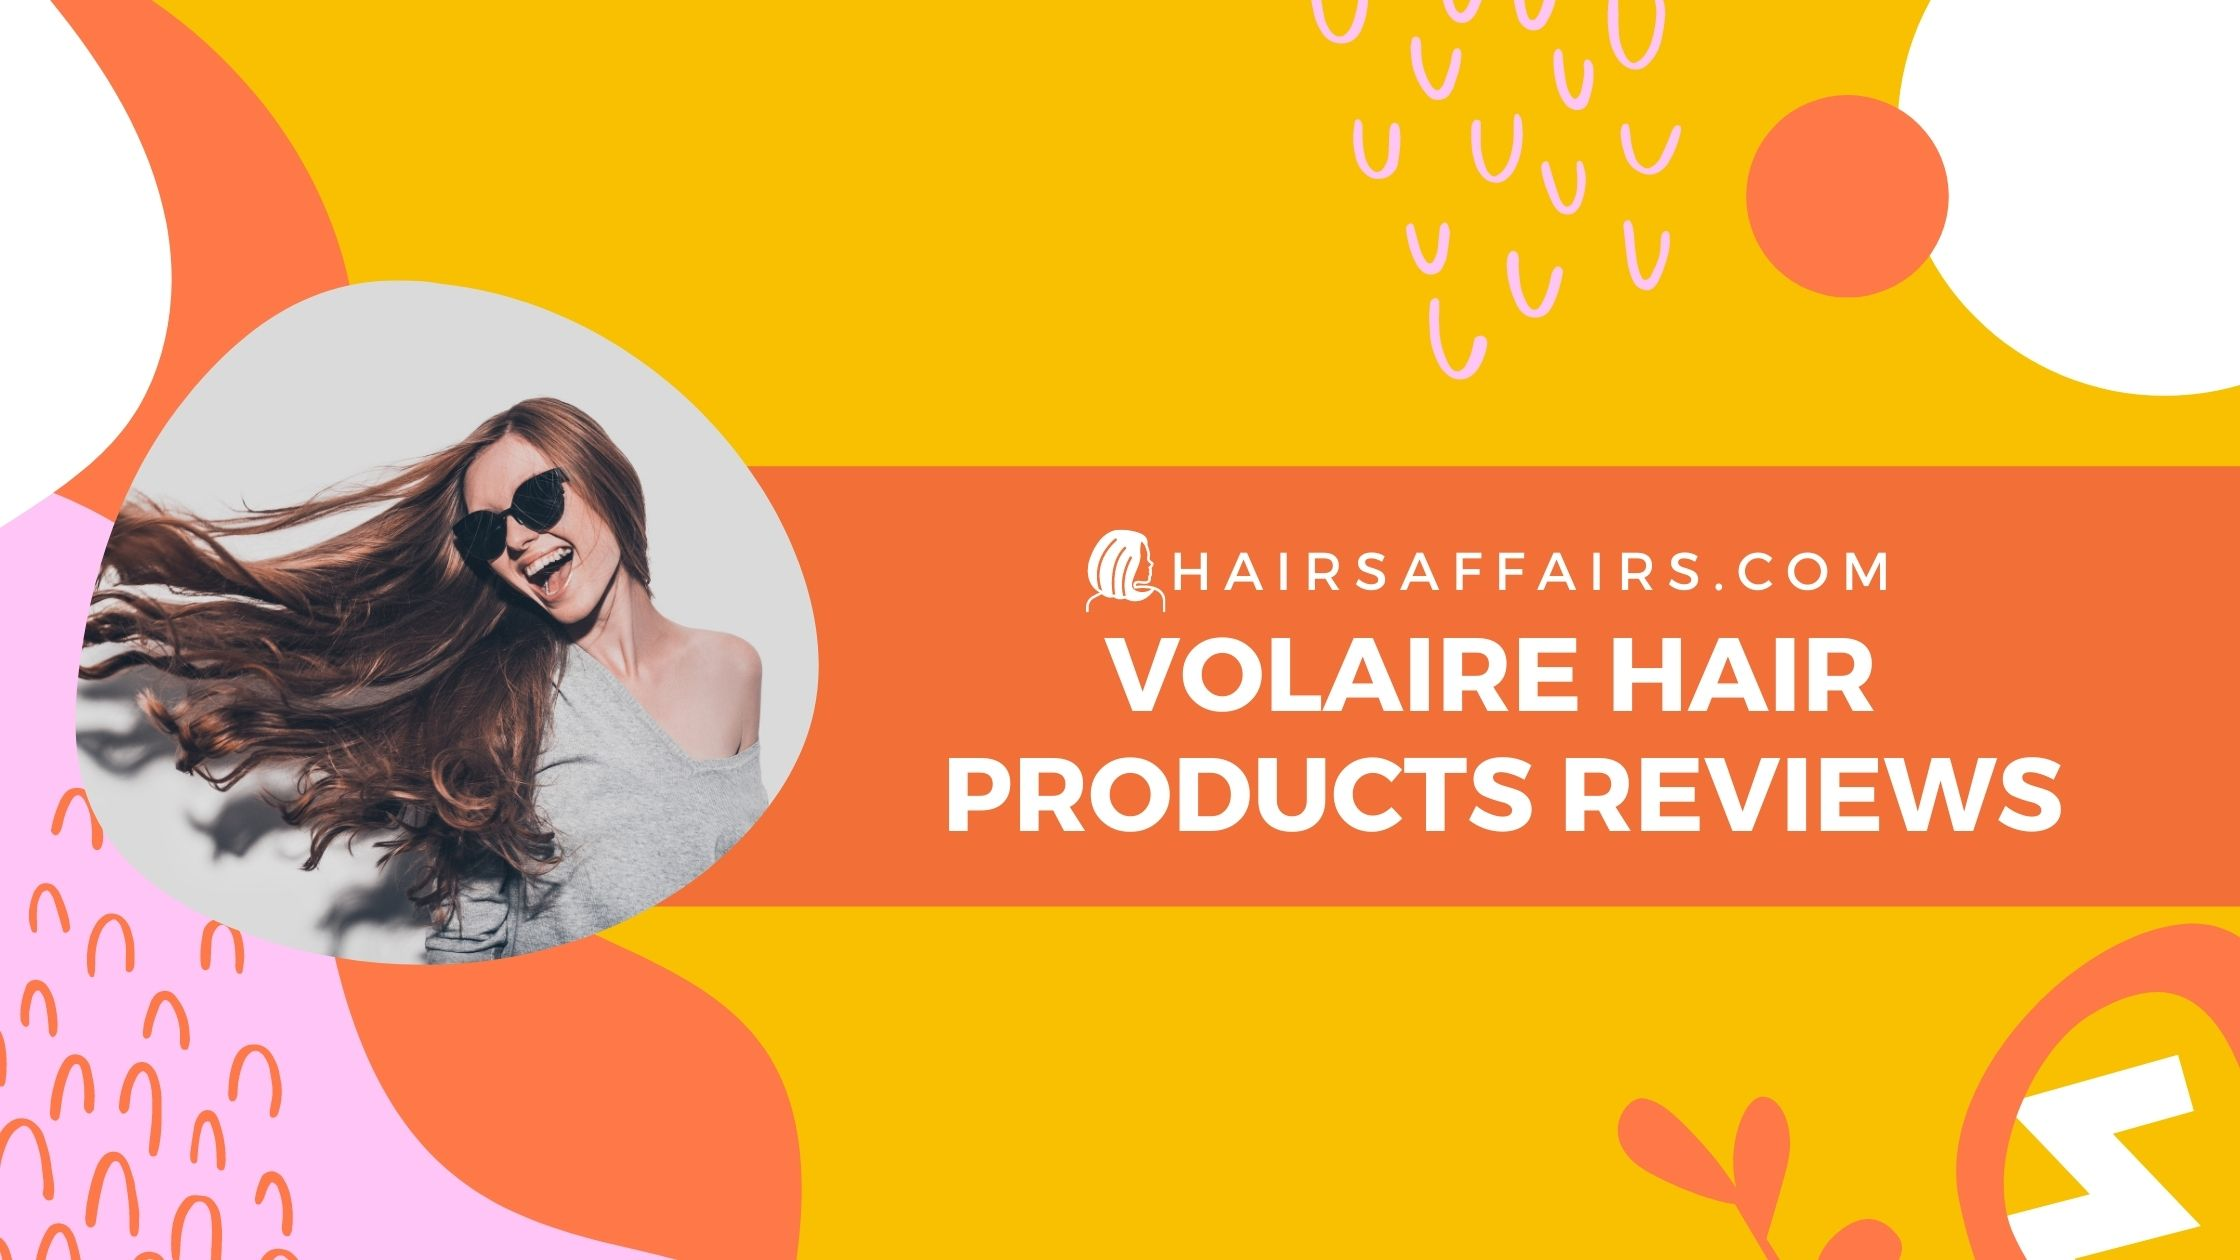 HA-Volaire-hair-products-review